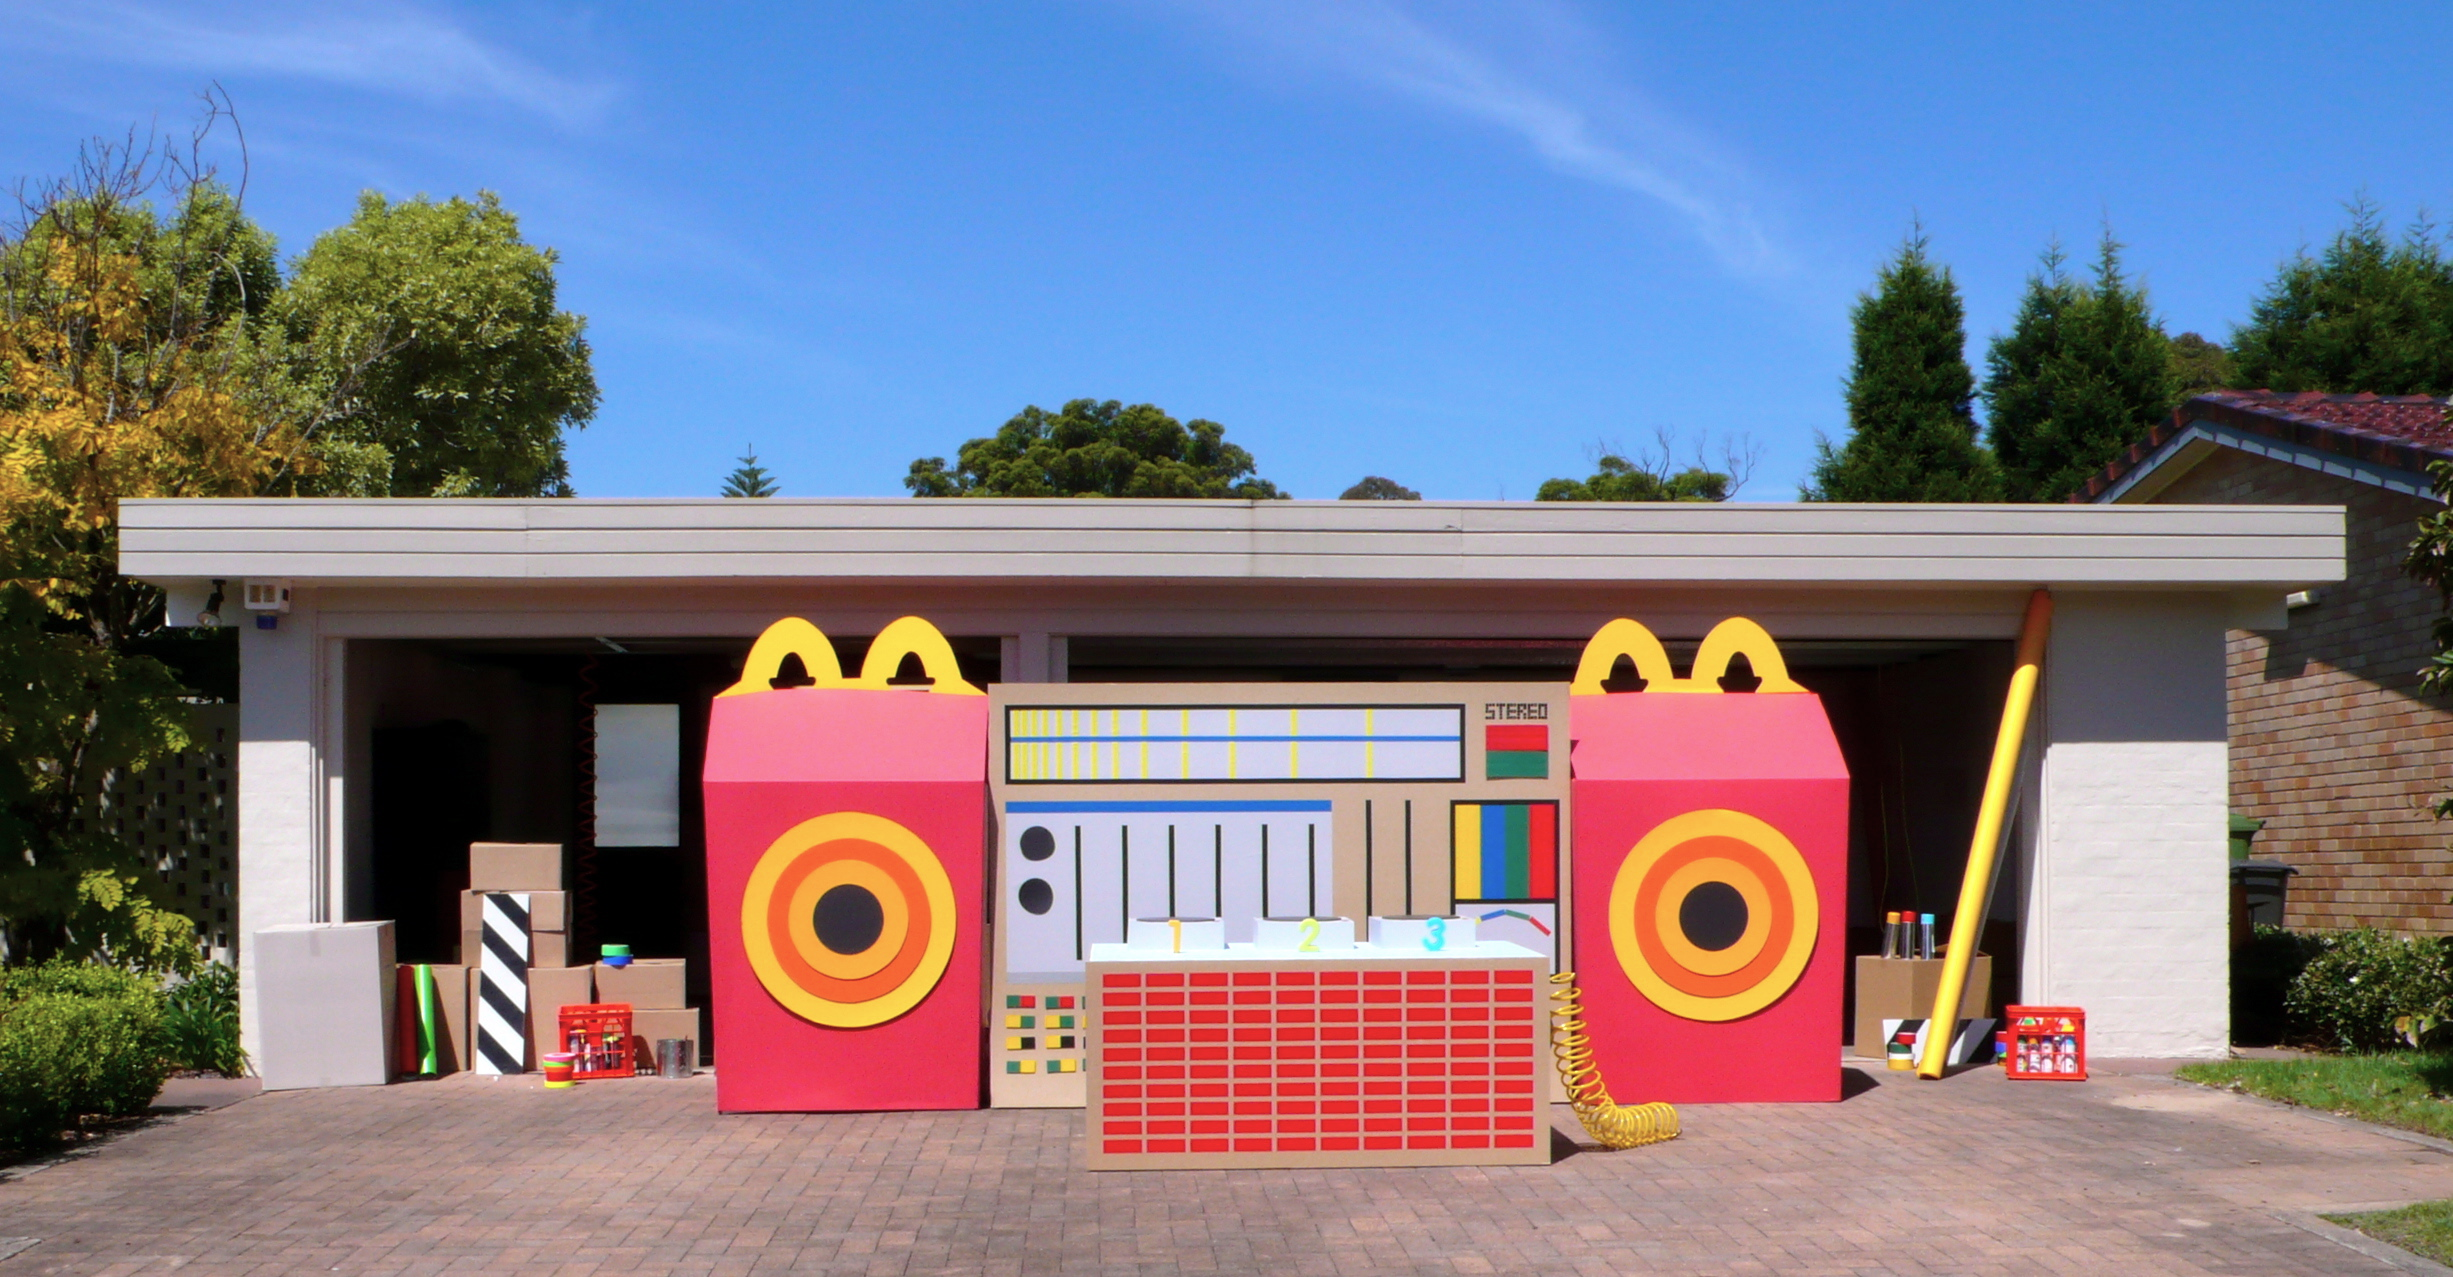 giant oversized stereo constructed out of cardboard & coloured gaffa tape with giant happy meal as speaker